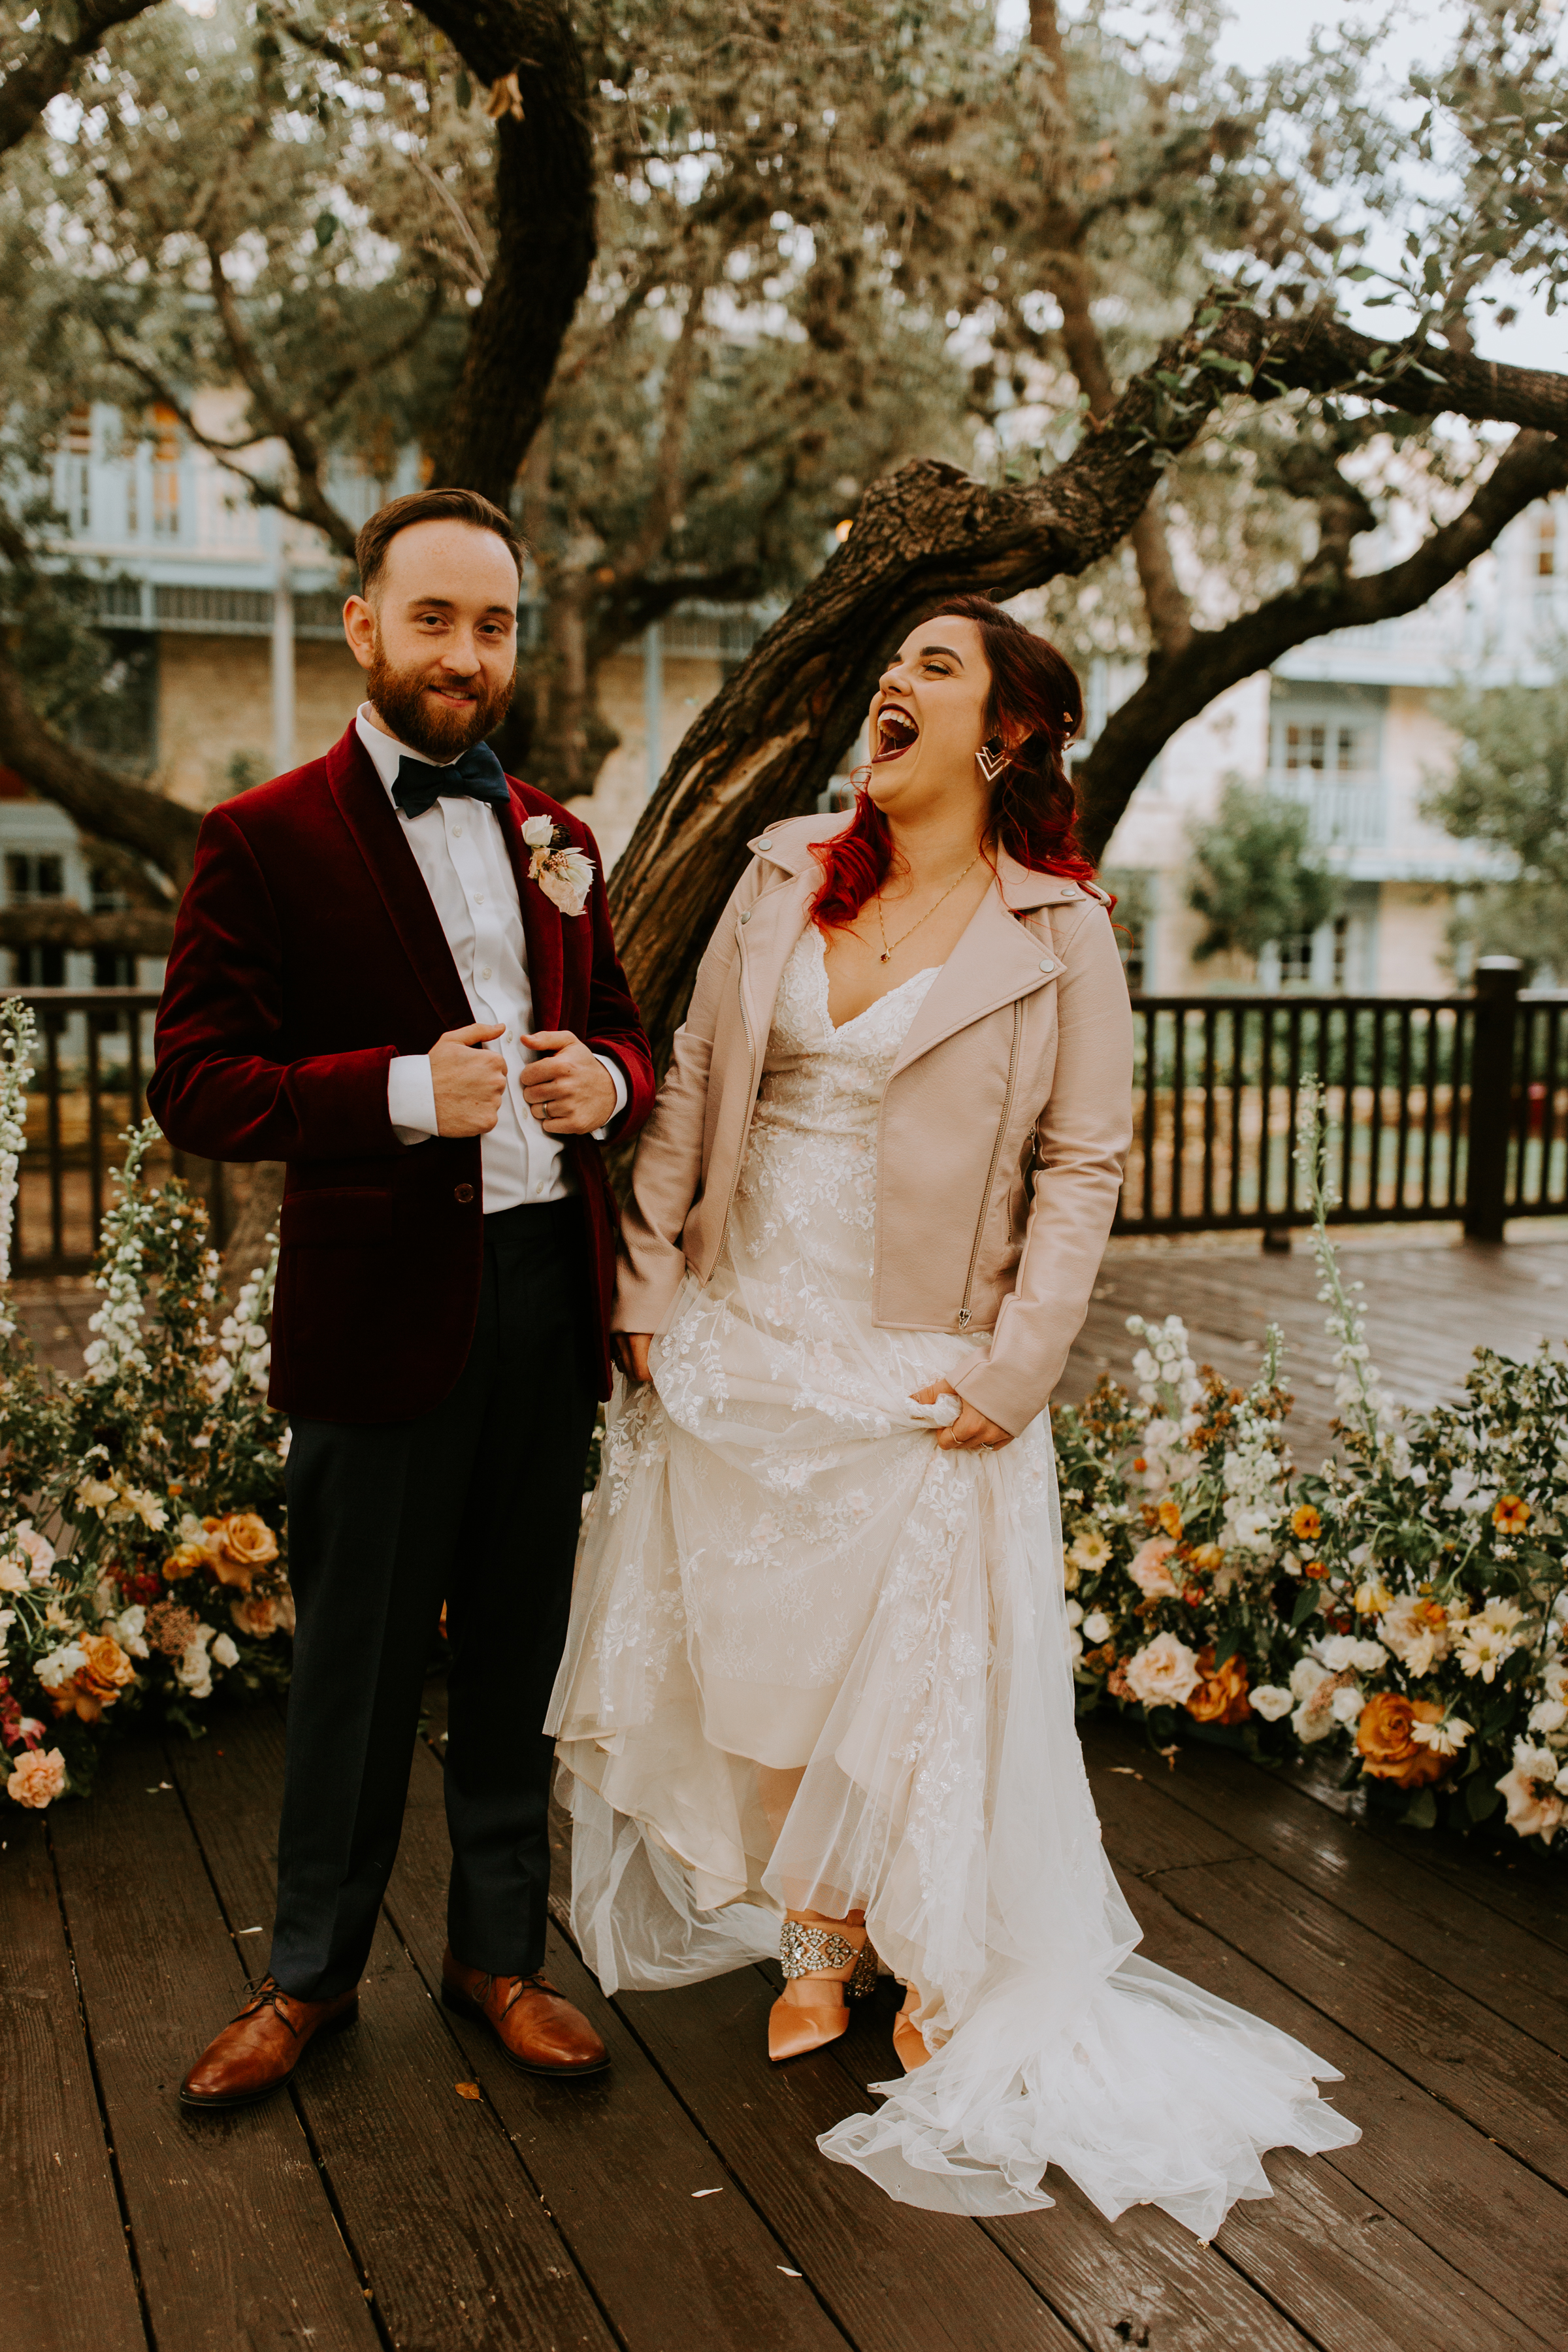 TIP #1 - Let loose on your day. Just relax & have some champagne. The best photos come from spontaneous moments of uncontrollable joy + dance parties + cracking up together. There's no reason to worry about posing or anything, just enjoy your wedding day like the best date ever & I'm third wheeling it.